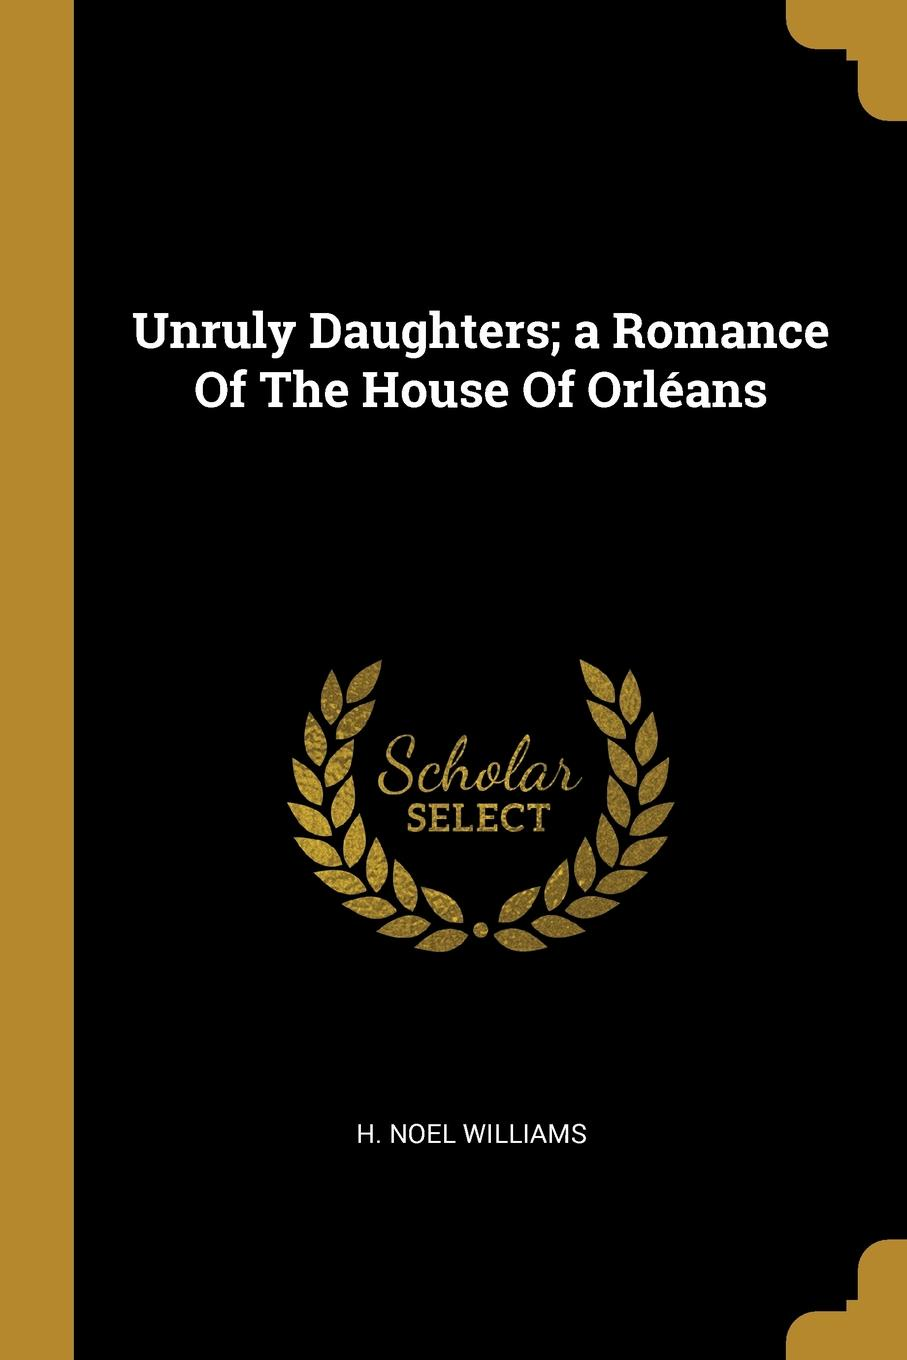 H. Noel Williams. Unruly Daughters; a Romance Of The House Of Orleans